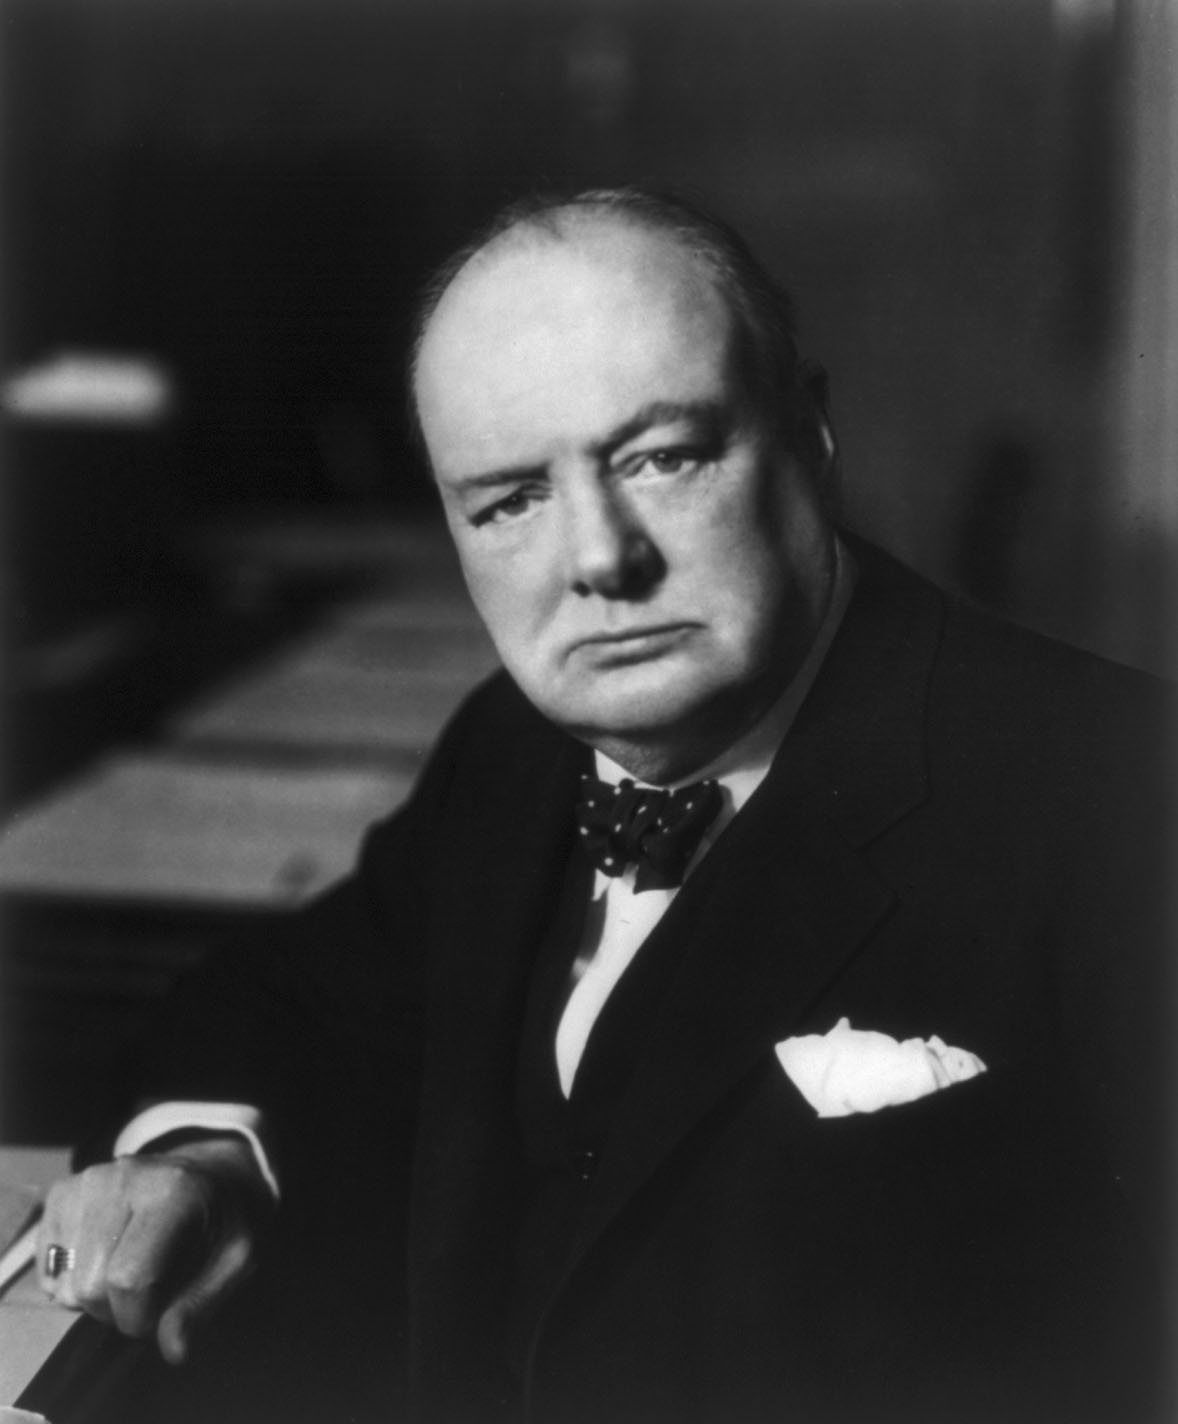 http://winstonchurchill-quotes.com/wp-content/uploads/2010/07/Winston_Churchill_01.jpg